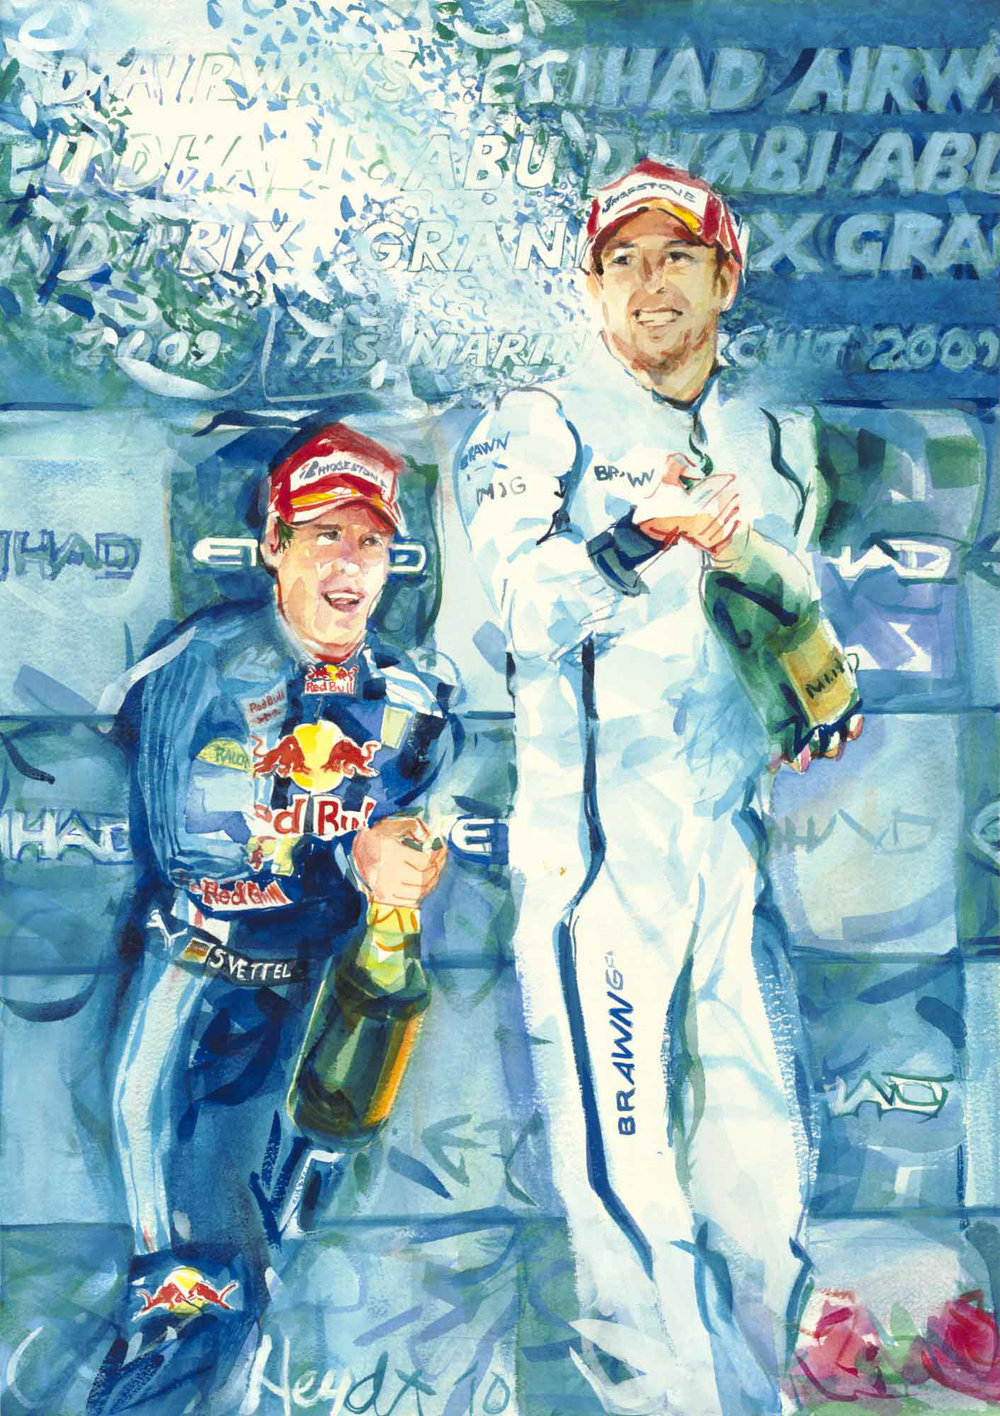 Formula1-wHEYDT-winners circle celebration.jpg